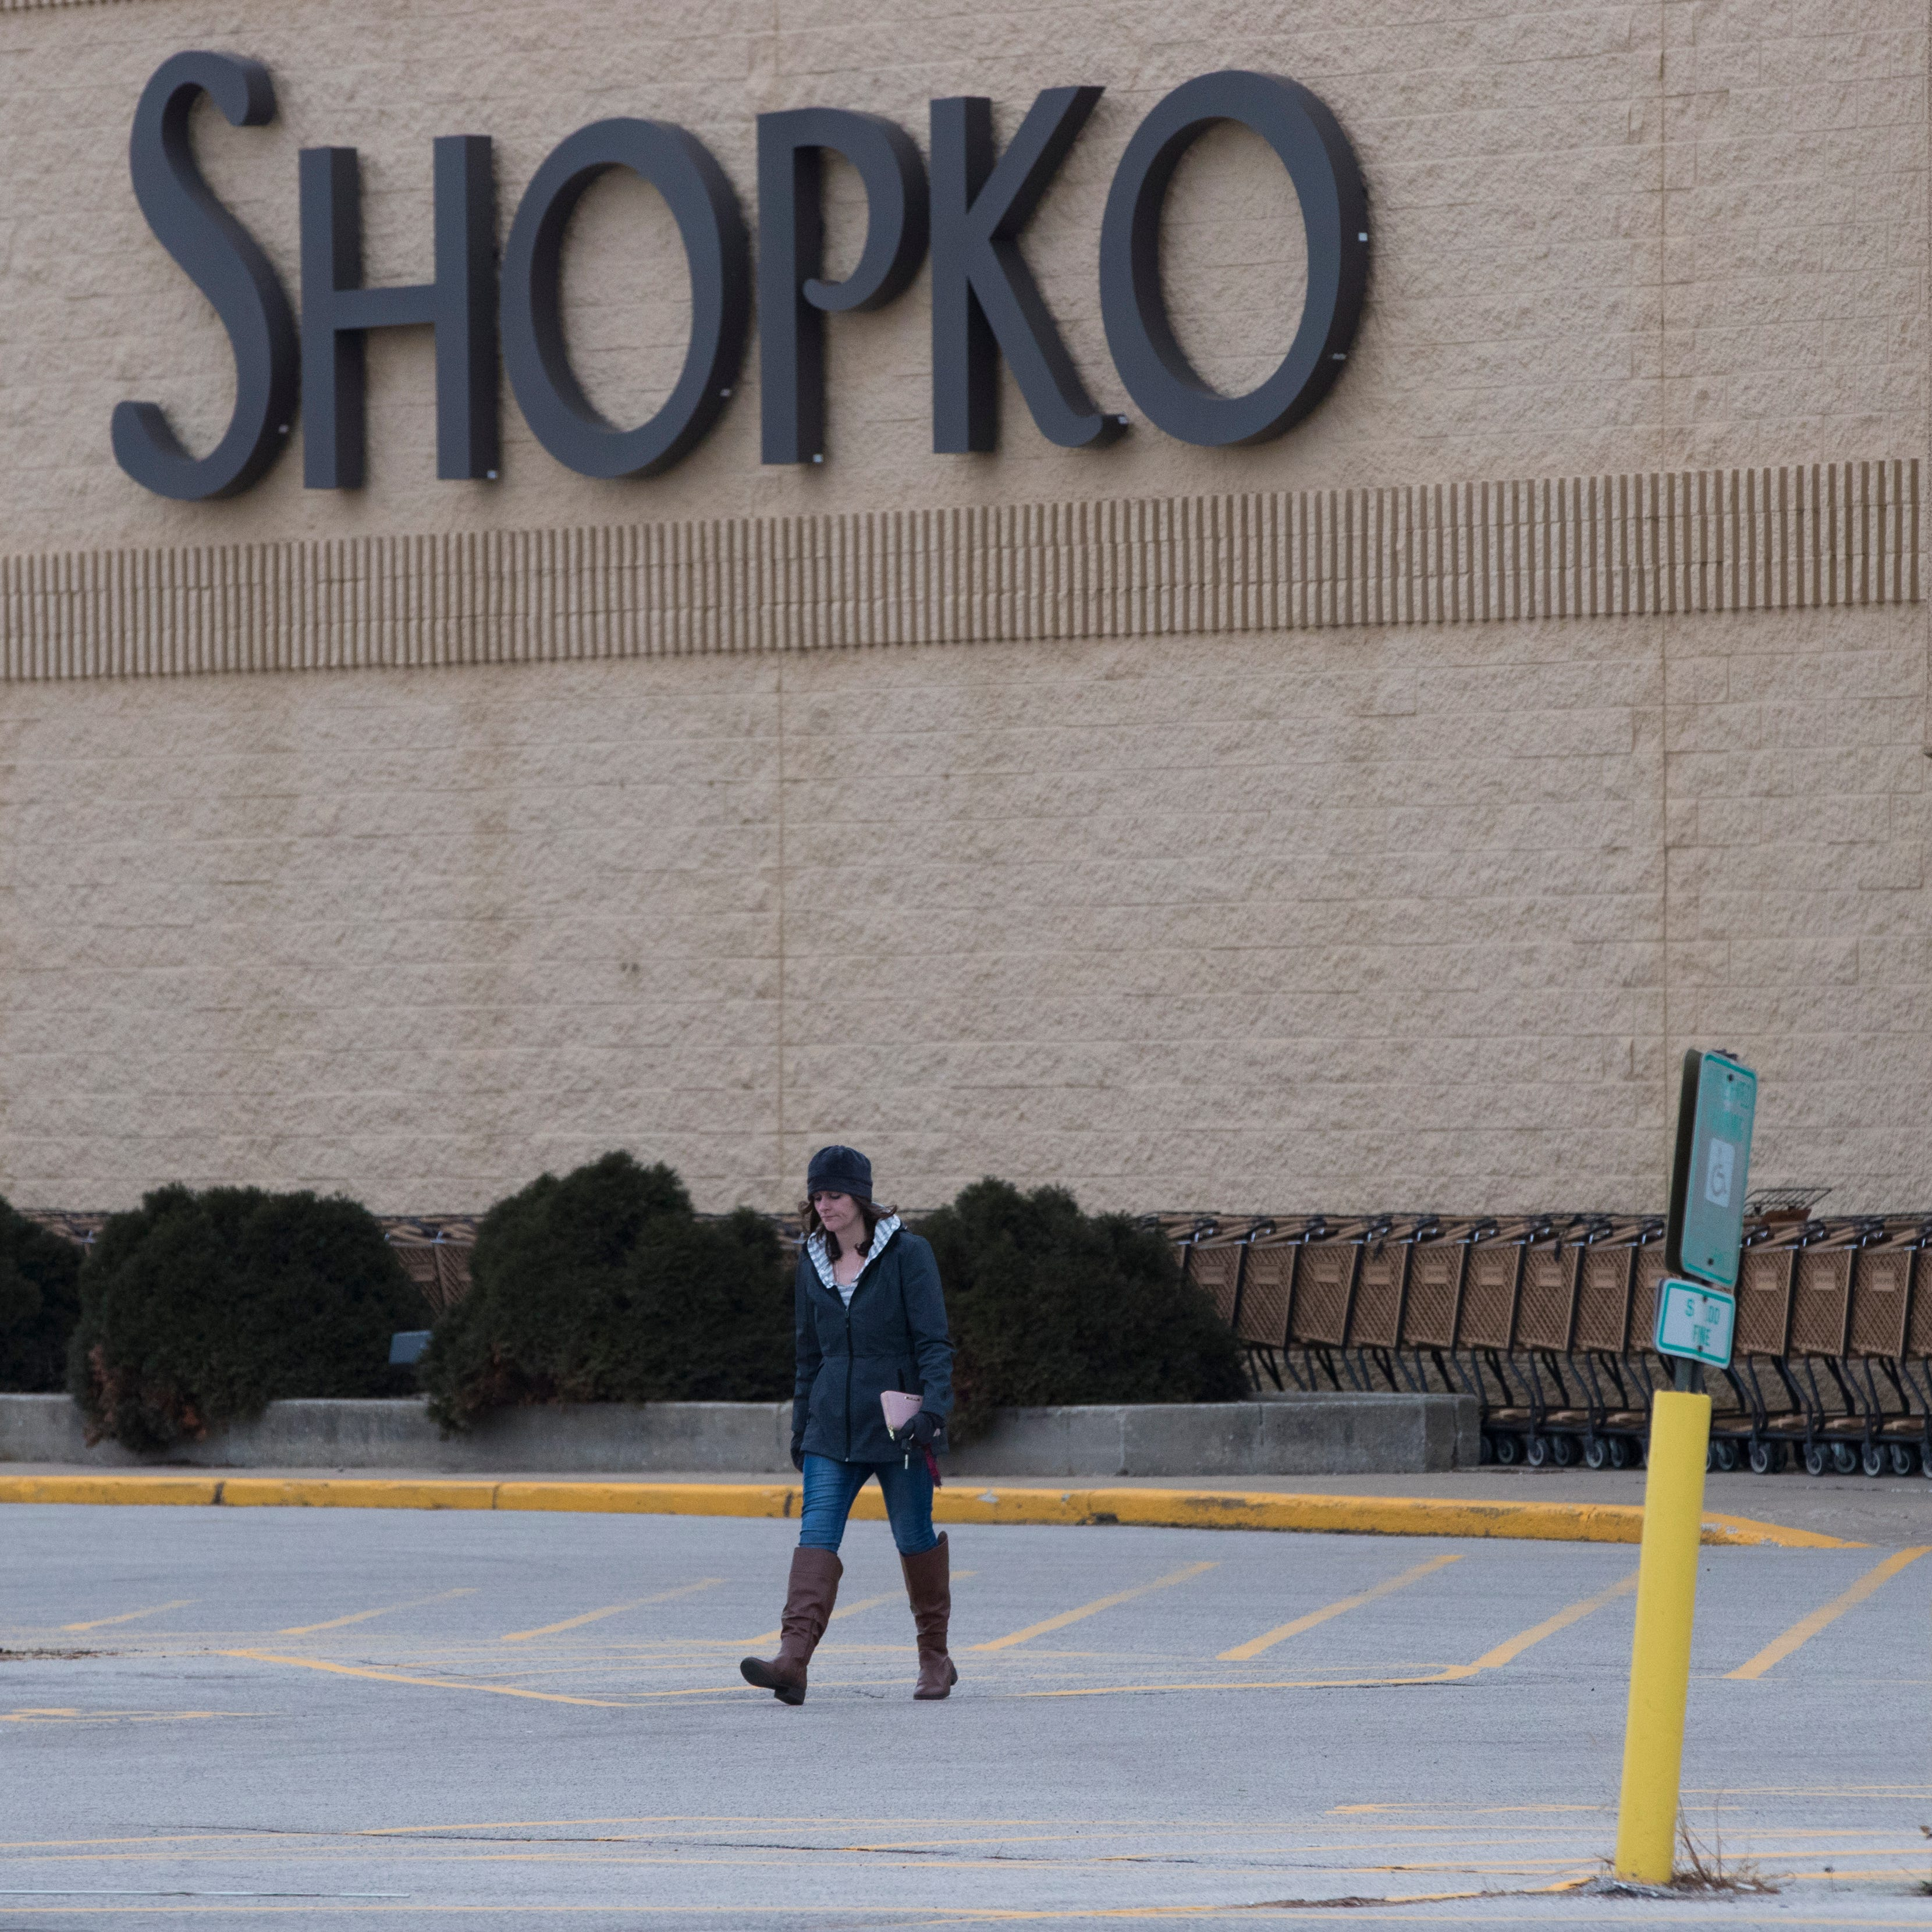 The first wave of Shopko store closings will cut nearly 580 jobs